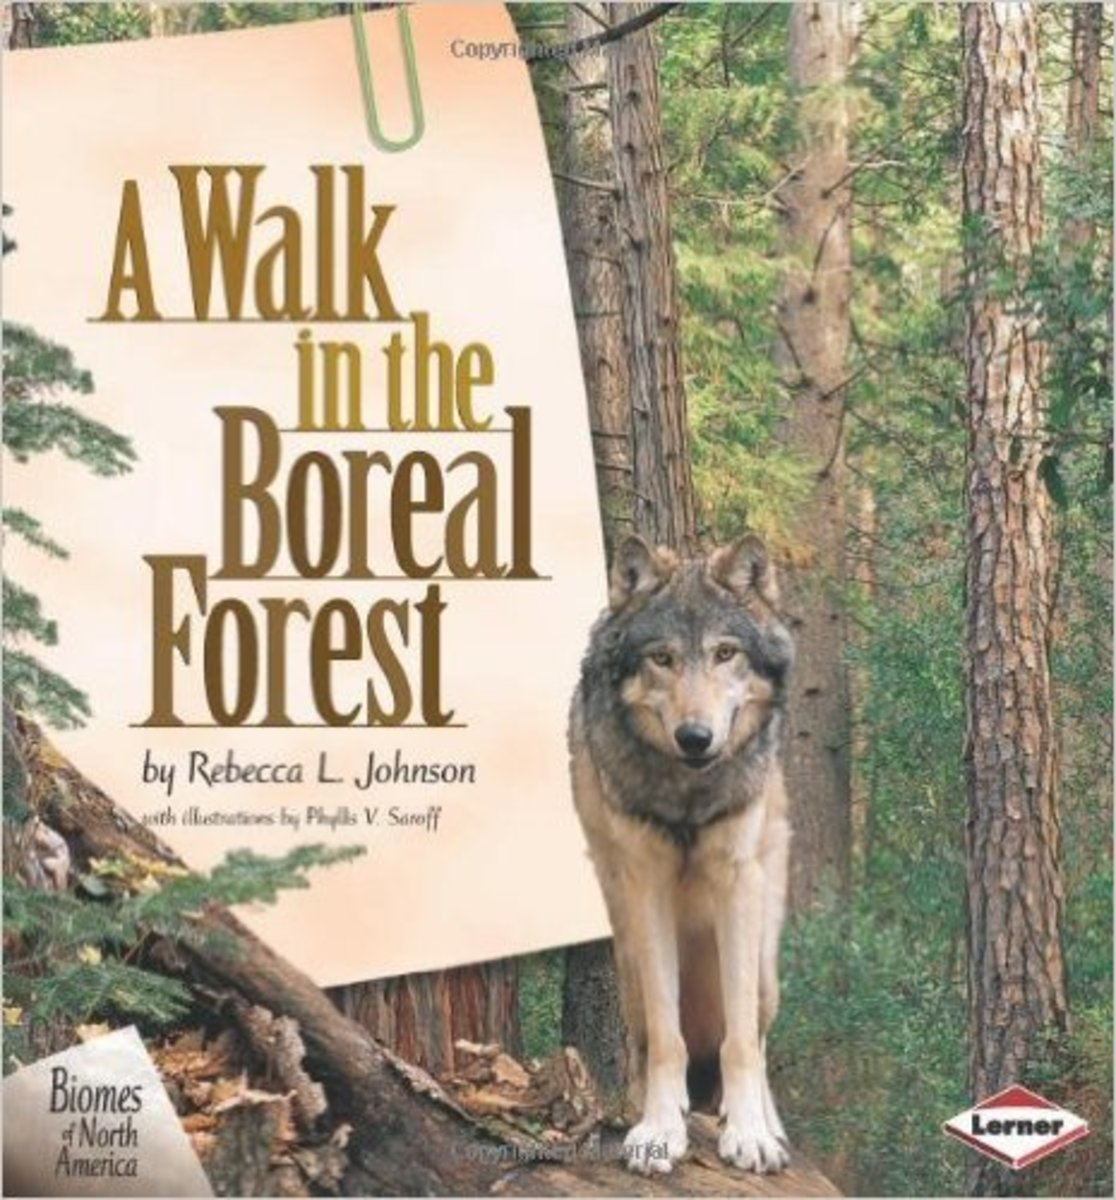 A Walk in the Boreal Forest (Biomes of North America) by Rebecca L. Johnson